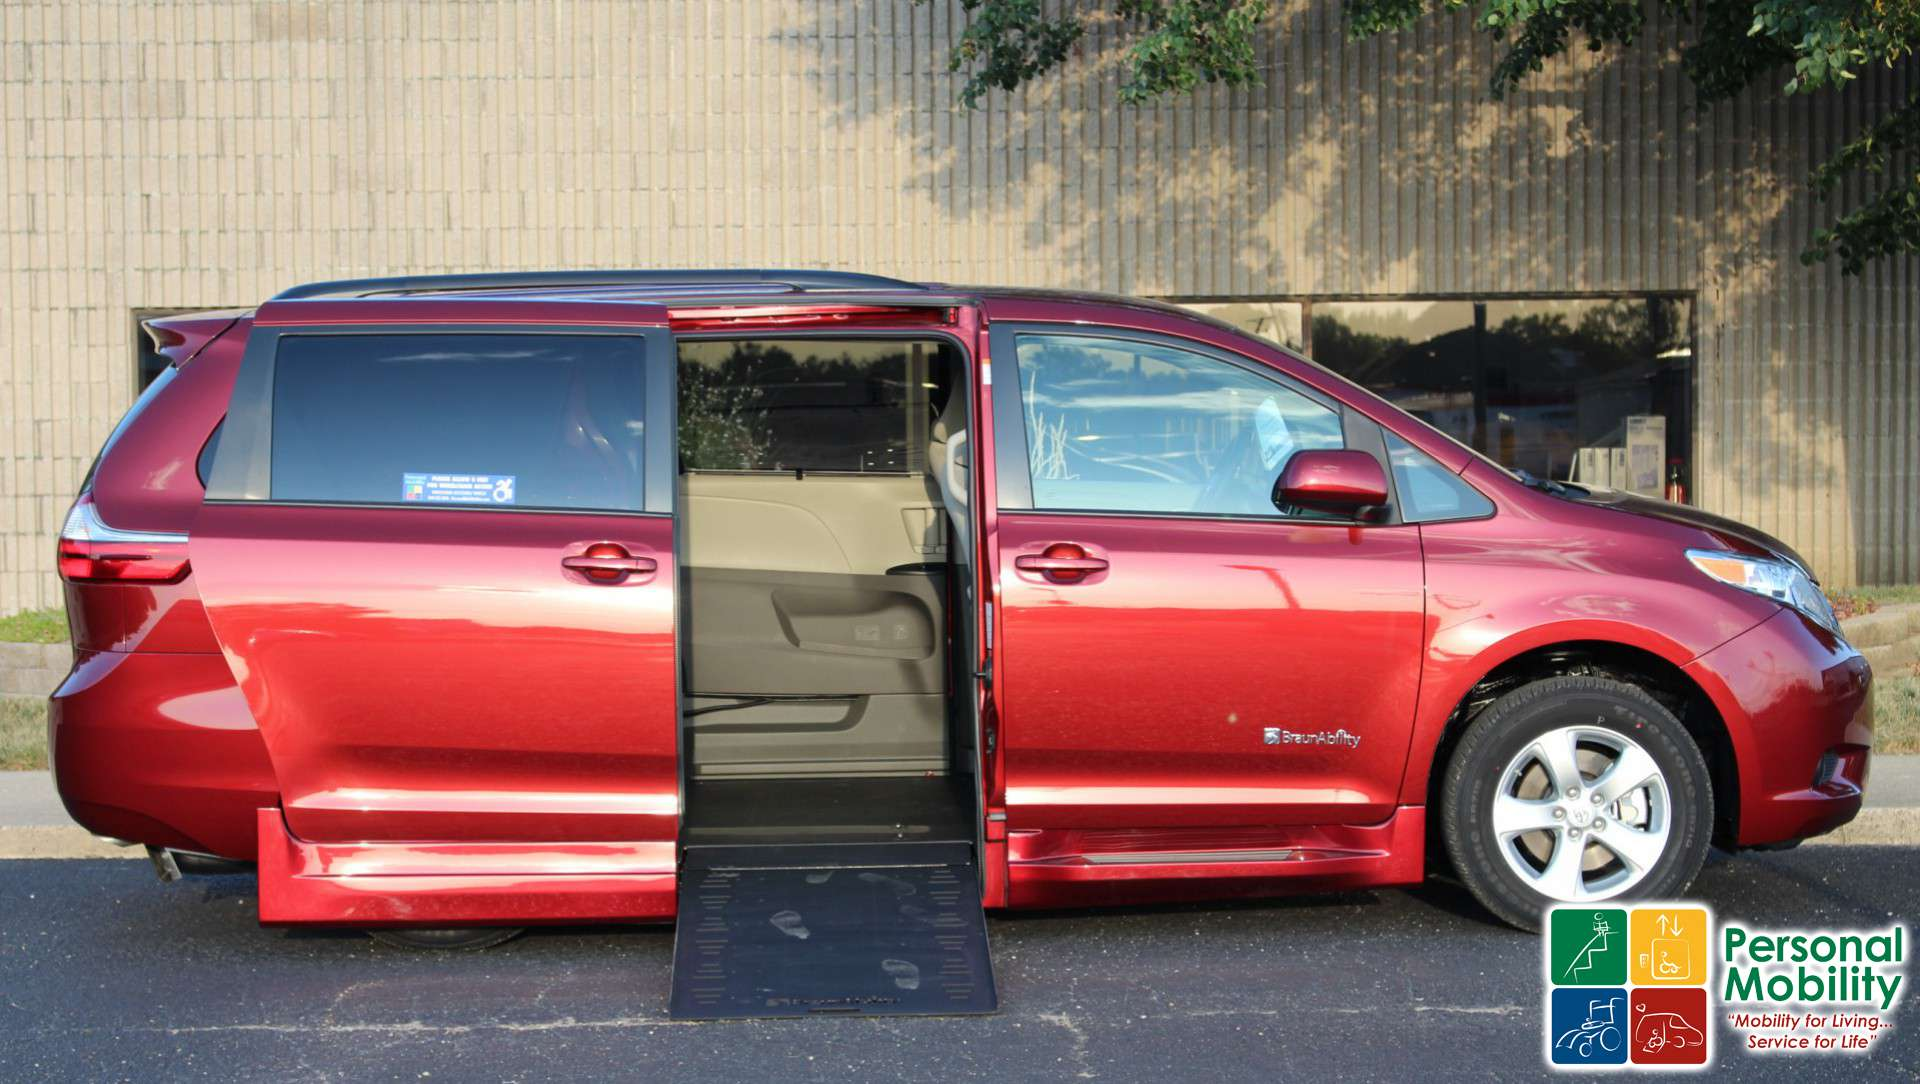 Toyota Sienna Service Manual: For vehicles equipped with mobile communication systems